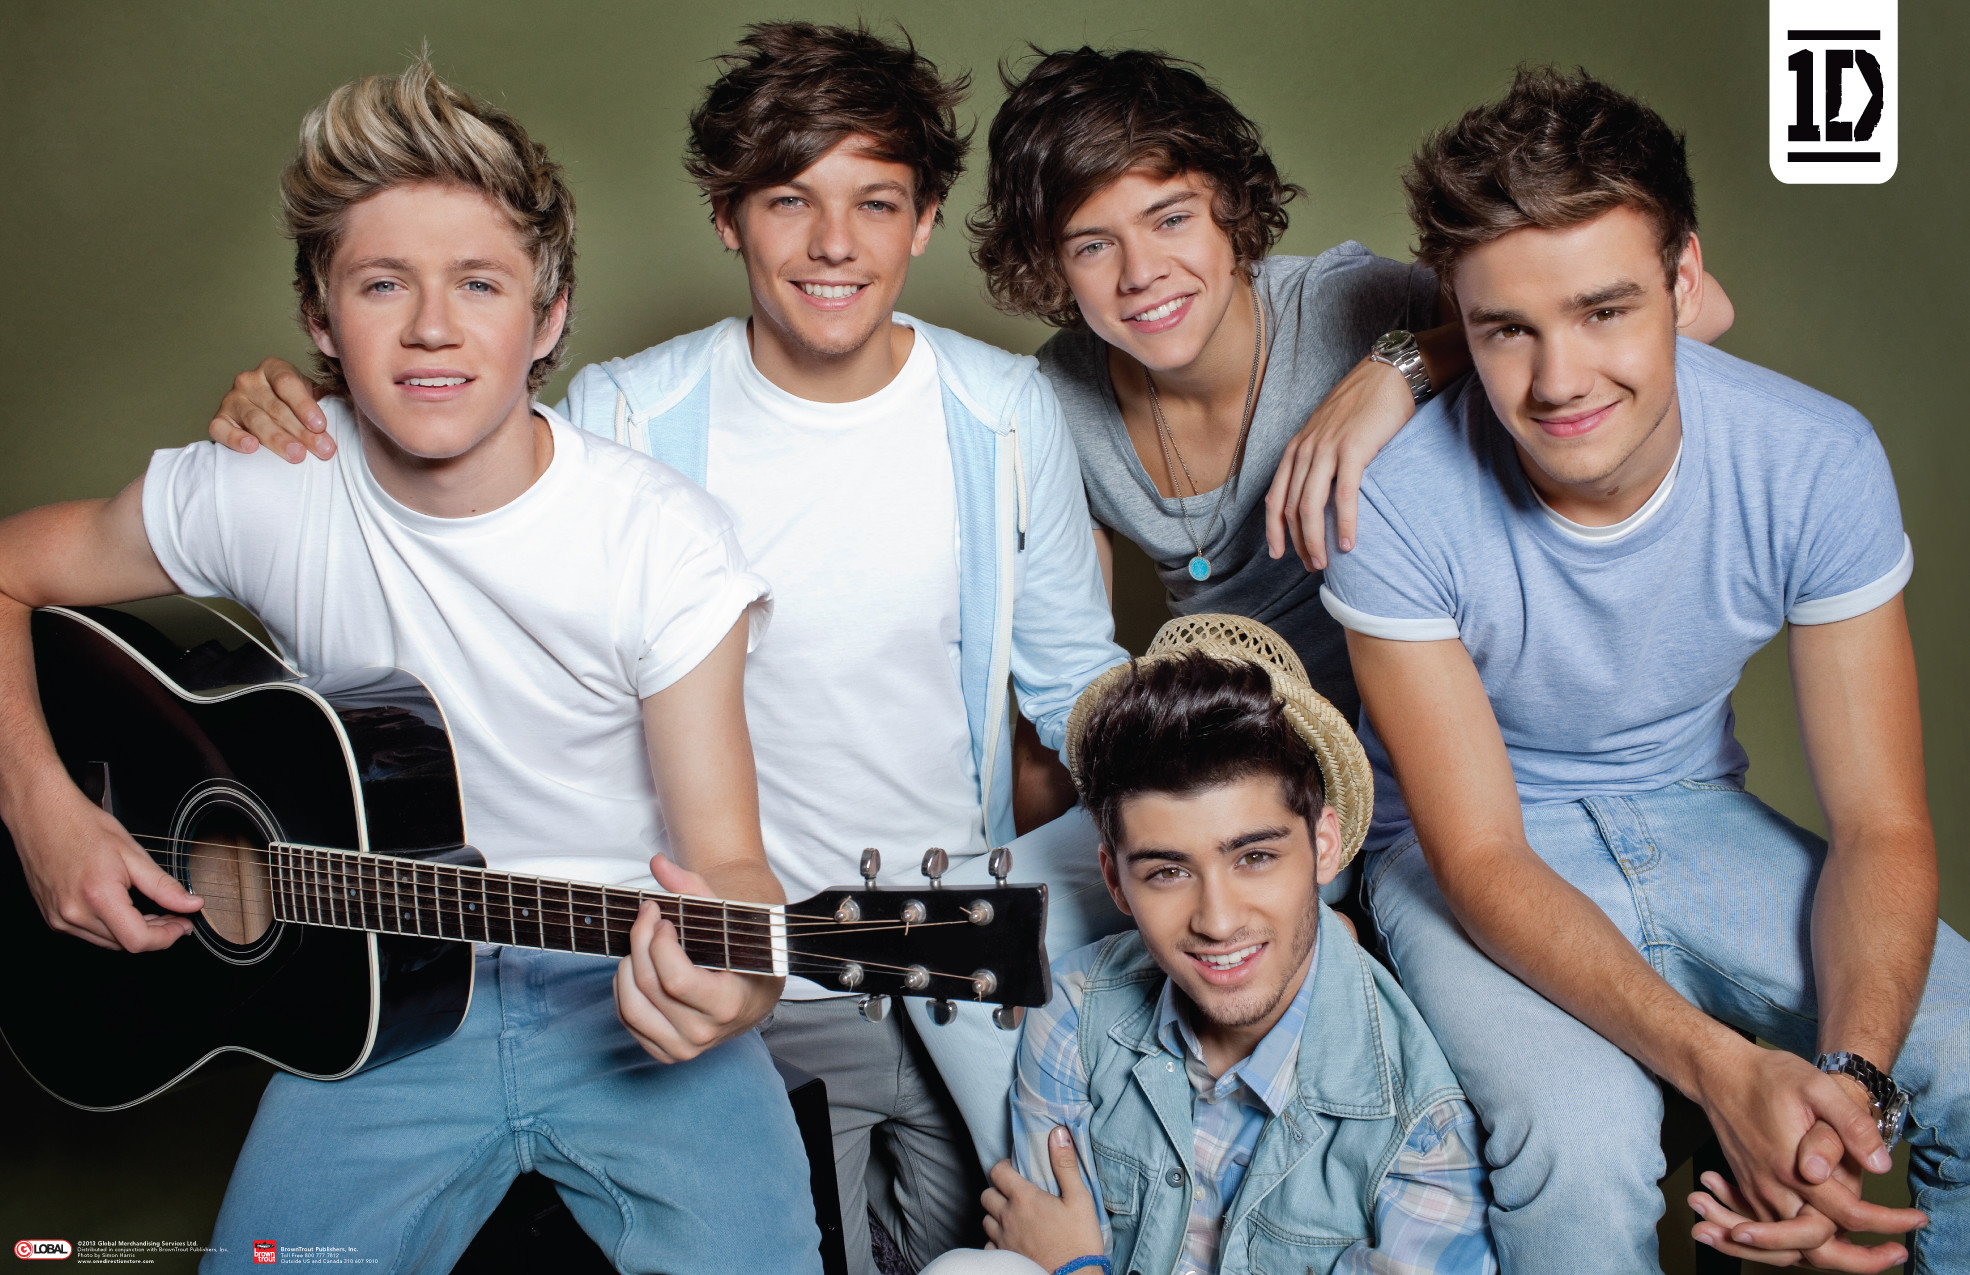 One Direction Guitar horizontal Poster